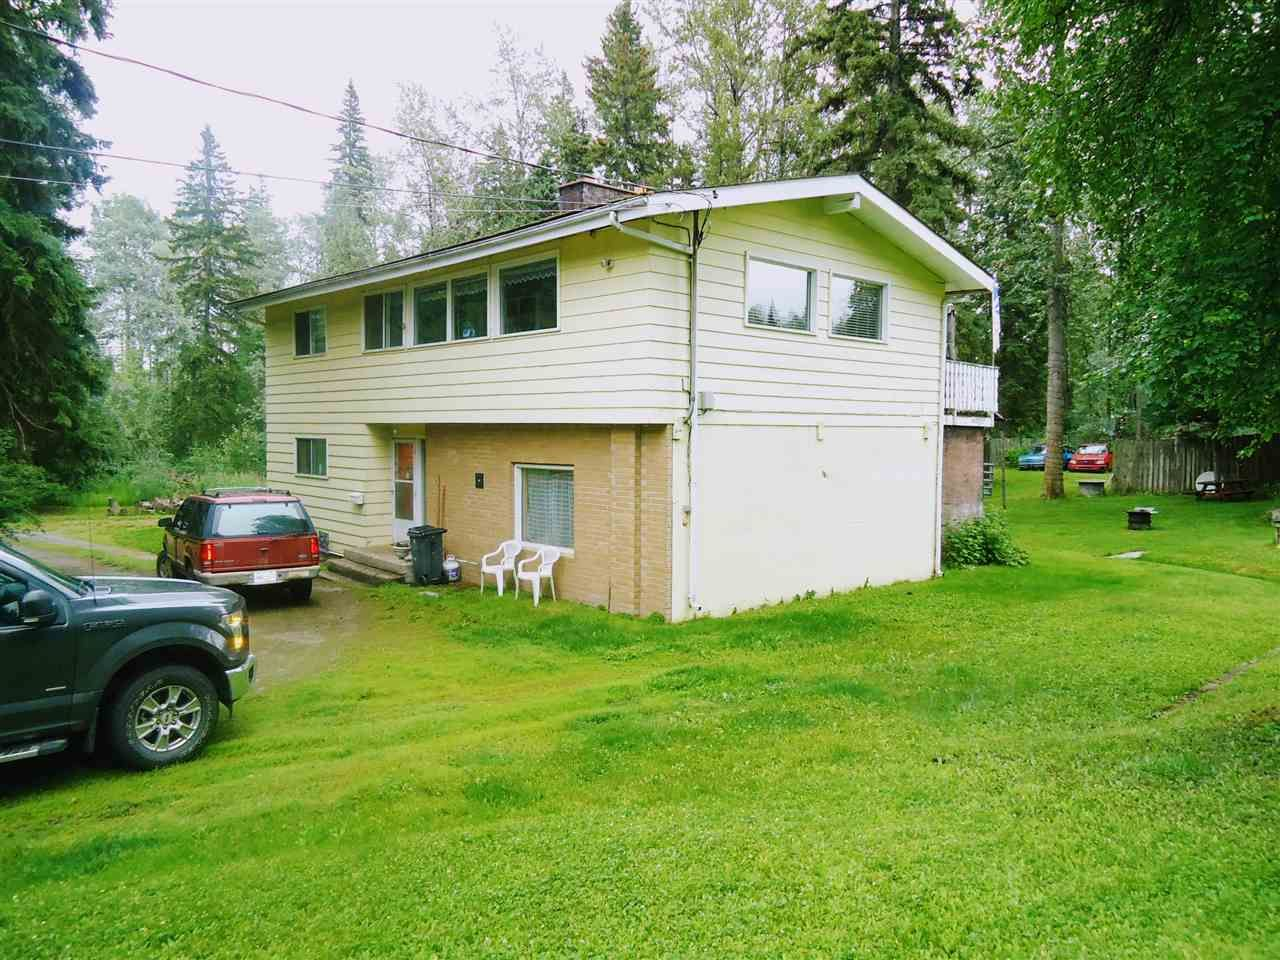 Main Photo: 6623 W PURDUE Road in Prince George: Gauthier House for sale (PG City South (Zone 74))  : MLS®# R2387769